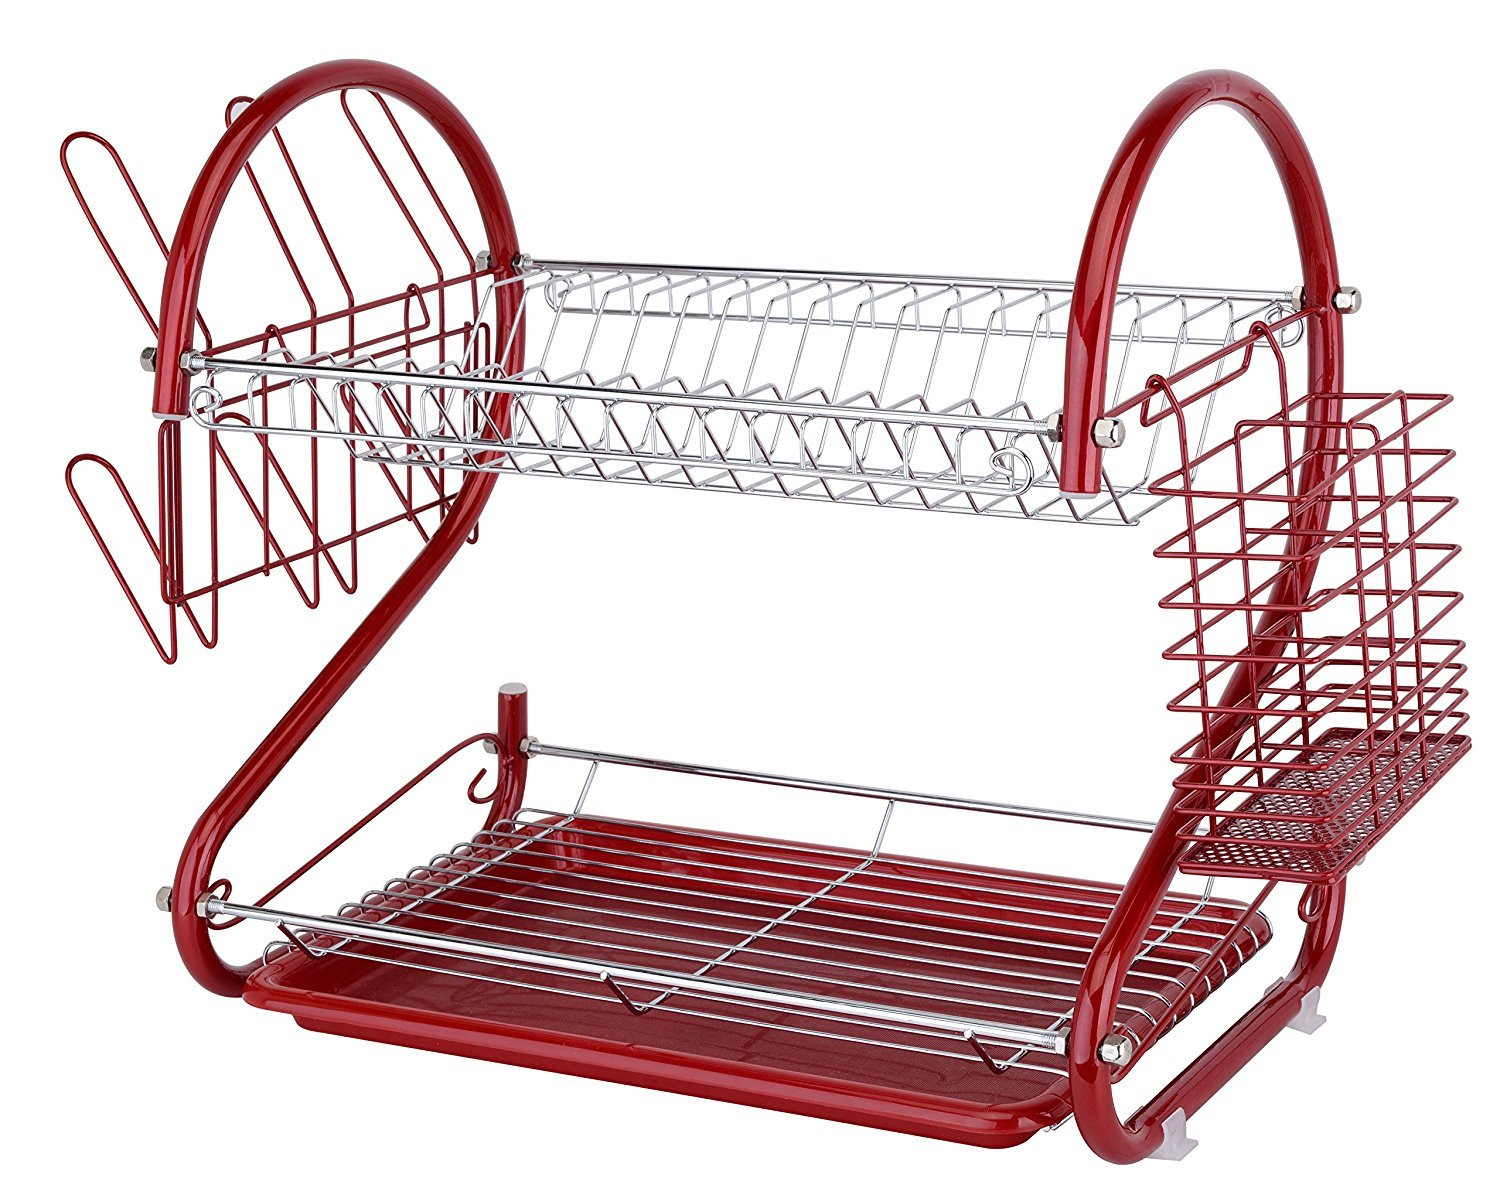 Europe Ware K10766, Iron Red Dish Rack with Plastic Draining Tray and Cutlery Drying Basket, Countertop Dish Drying Rack System with Flatware Holder and Cup Drainer, GIFT BOX